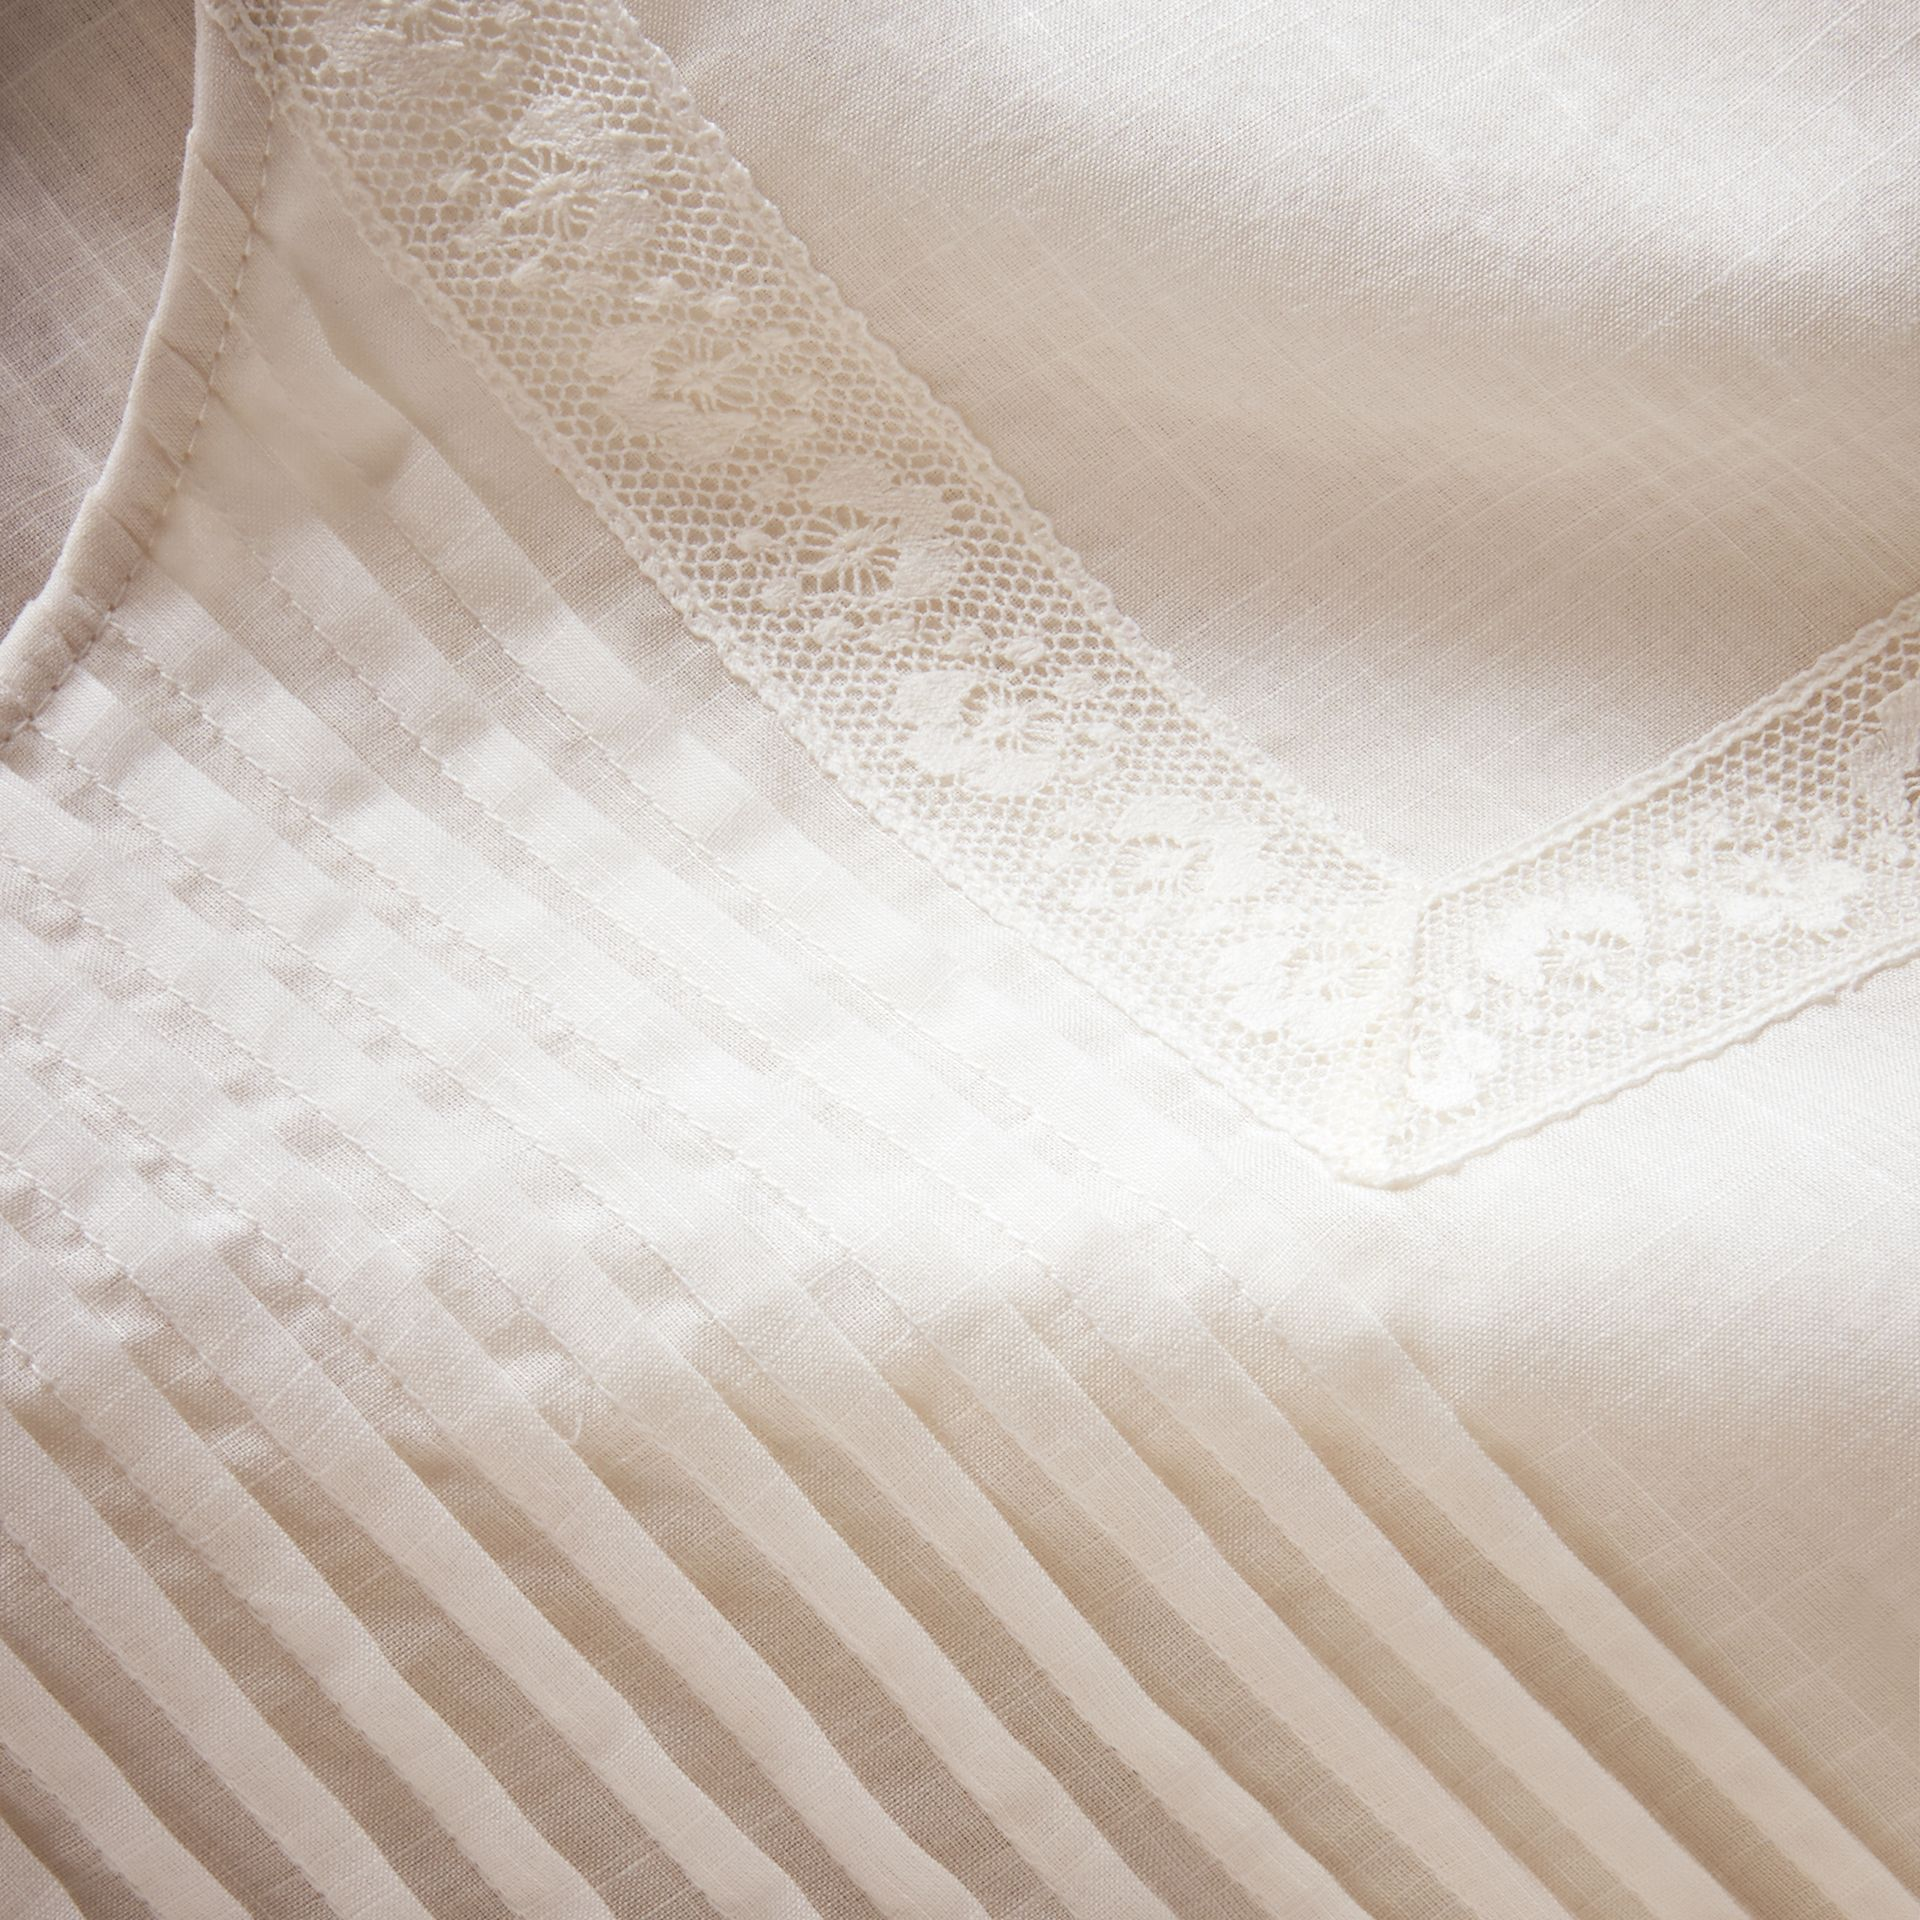 Pintuck and Lace Detail Cotton Dress in Natural White - Women | Burberry - gallery image 2